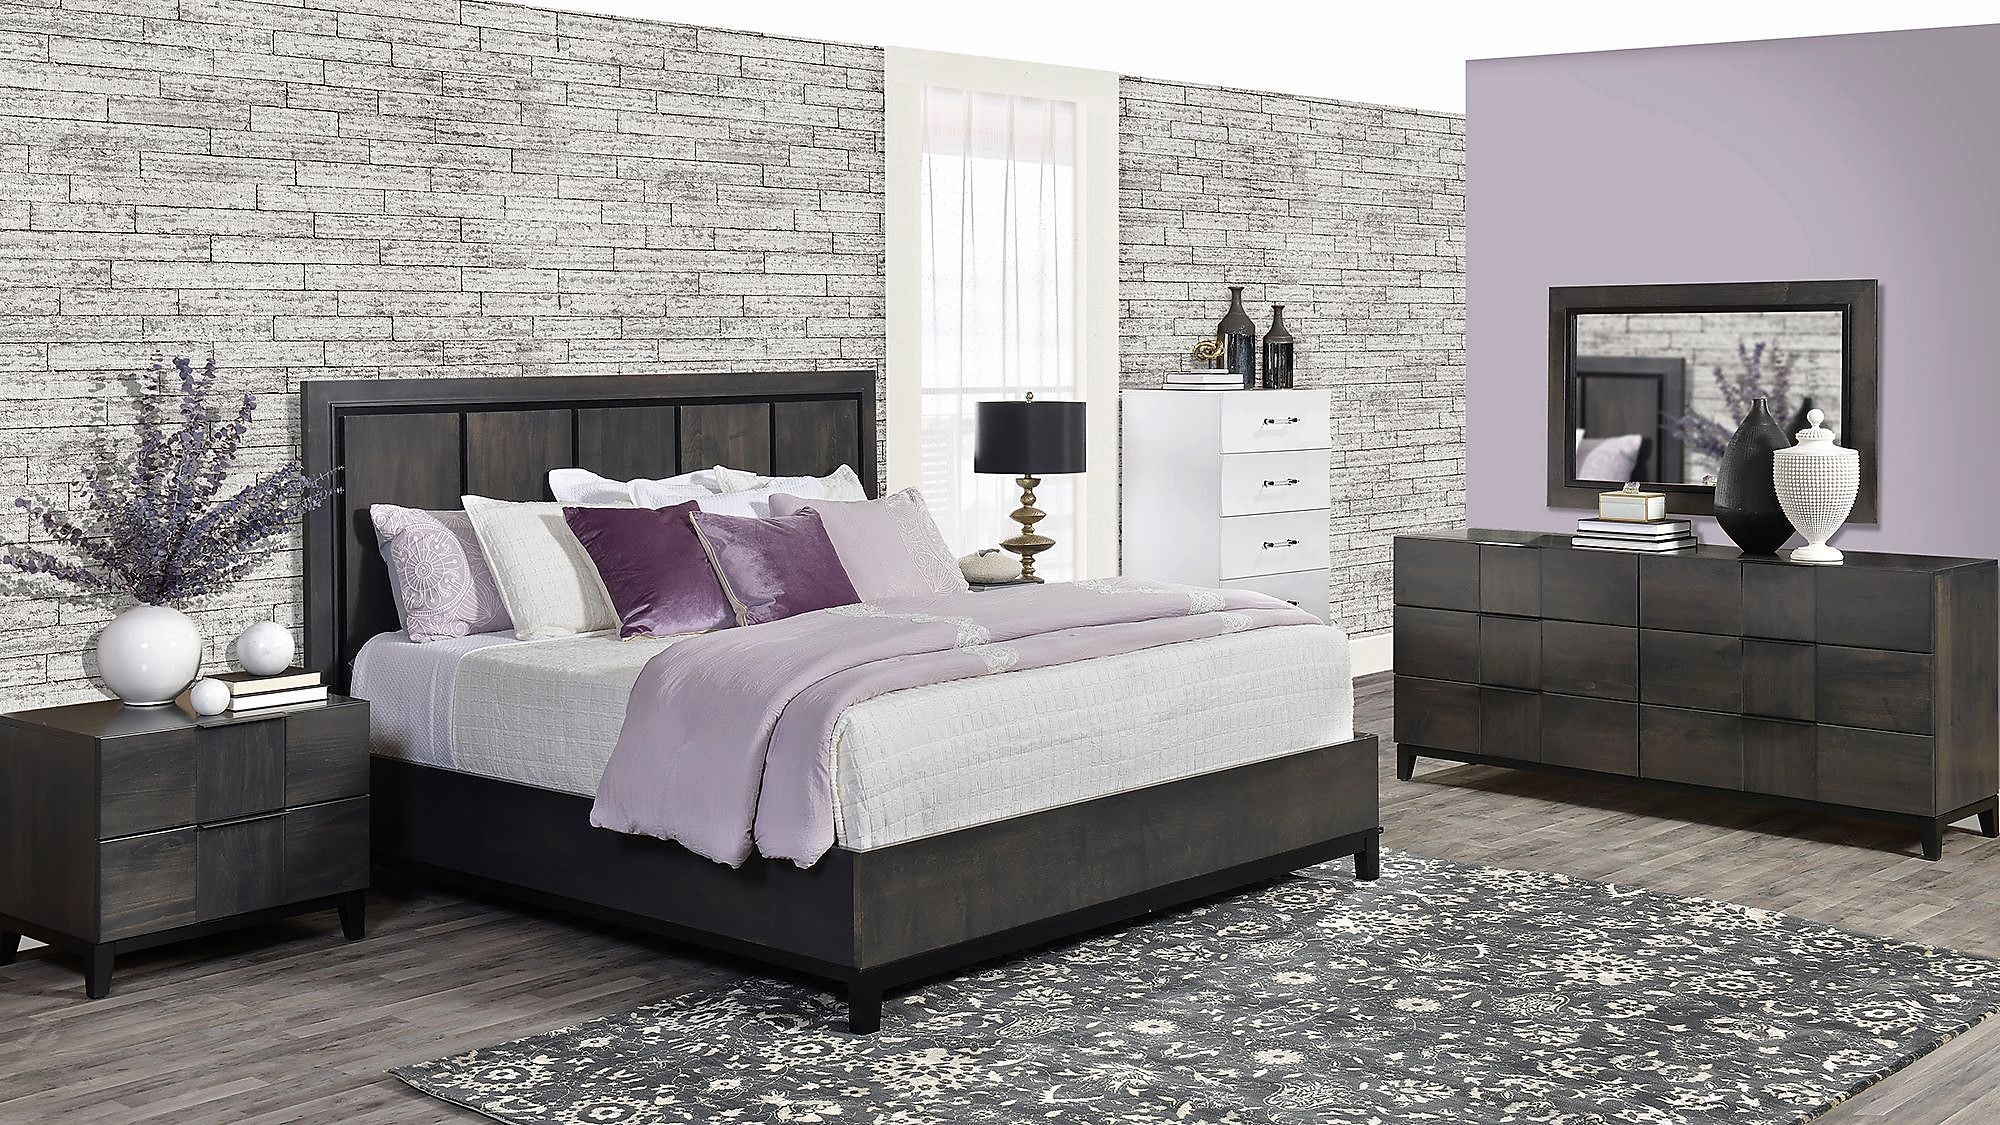 Cvw American Modern Bedroom 2 Room Concepts